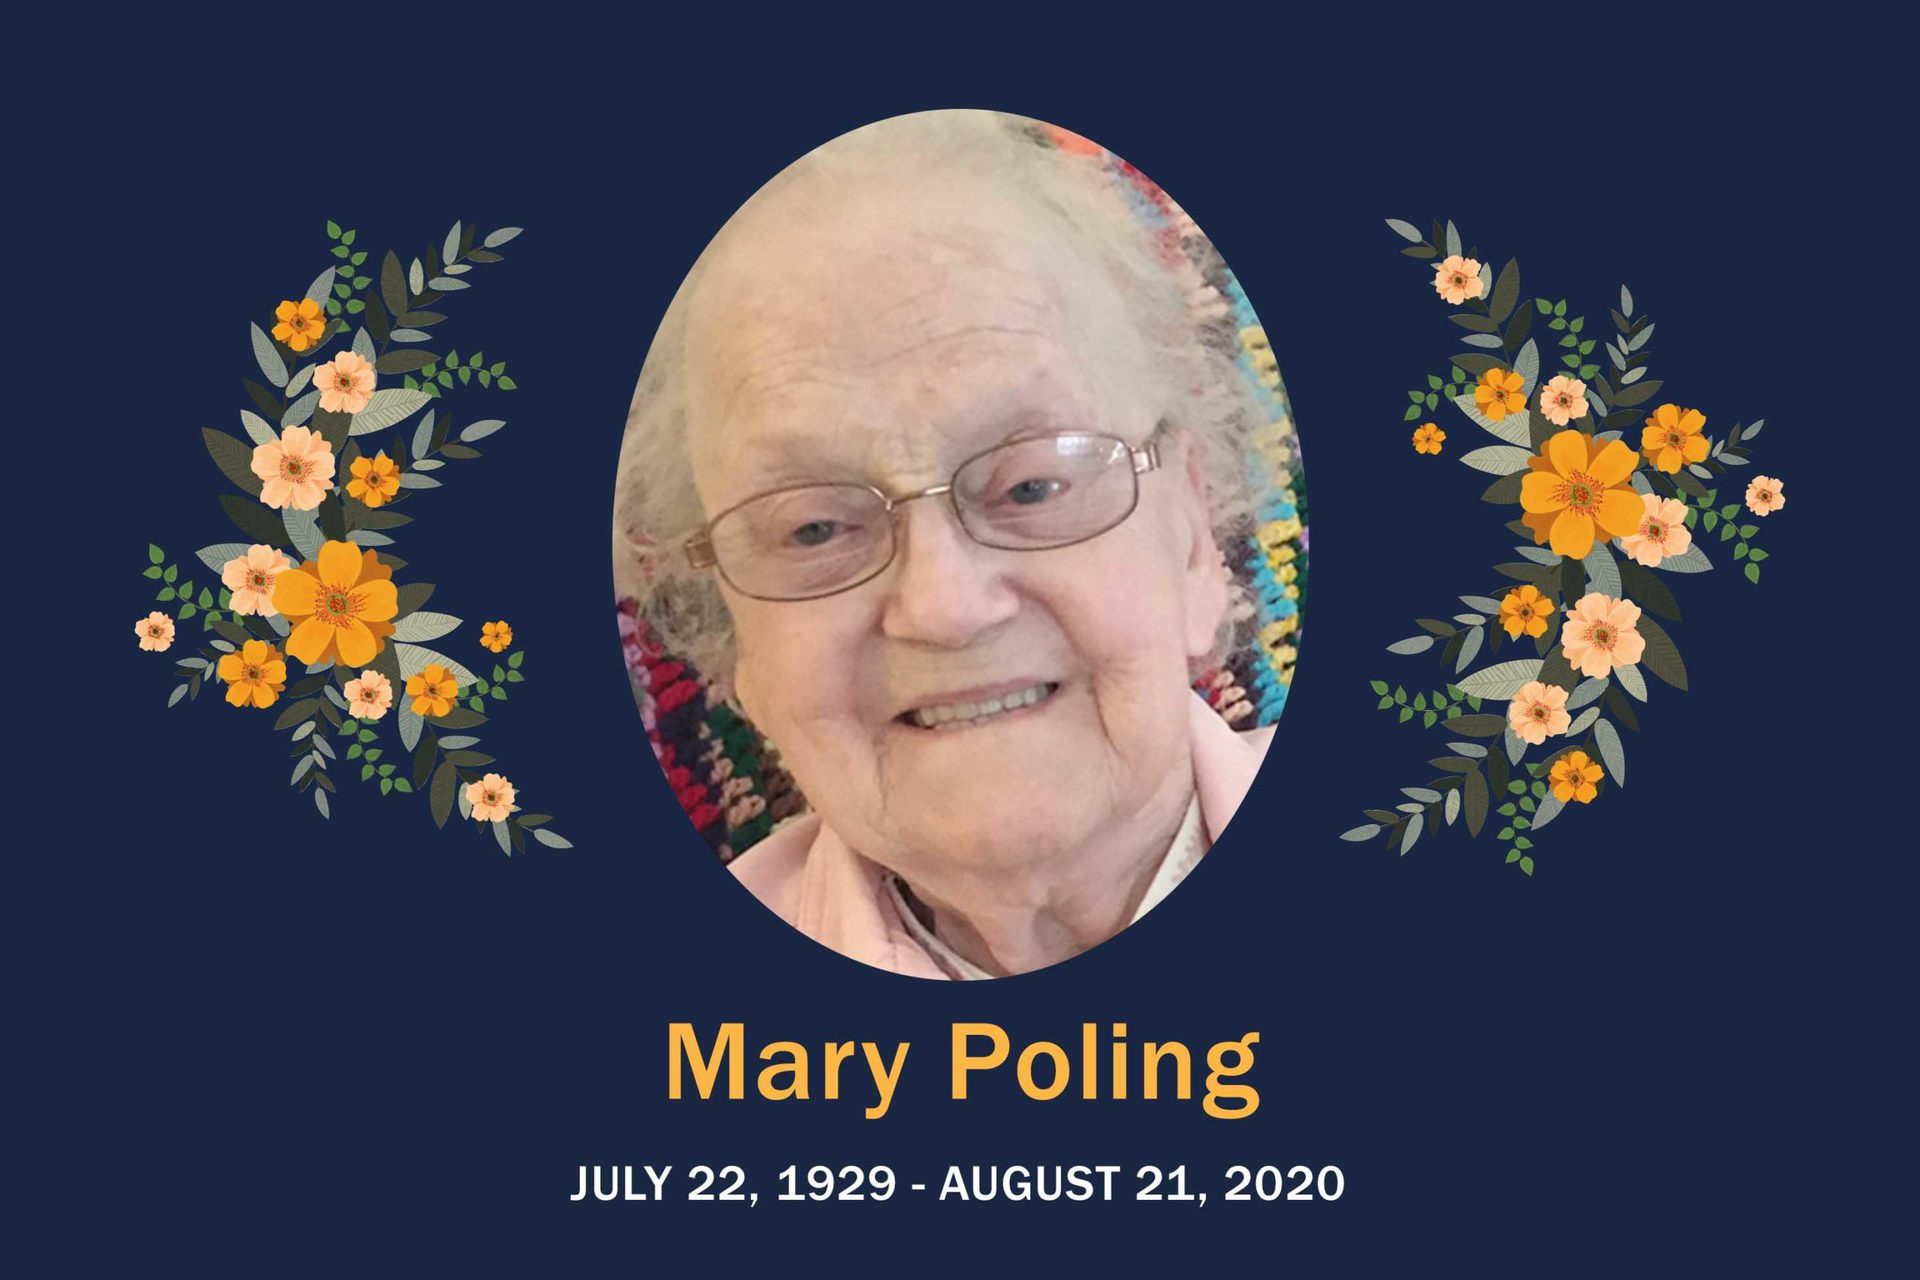 Mary Poling